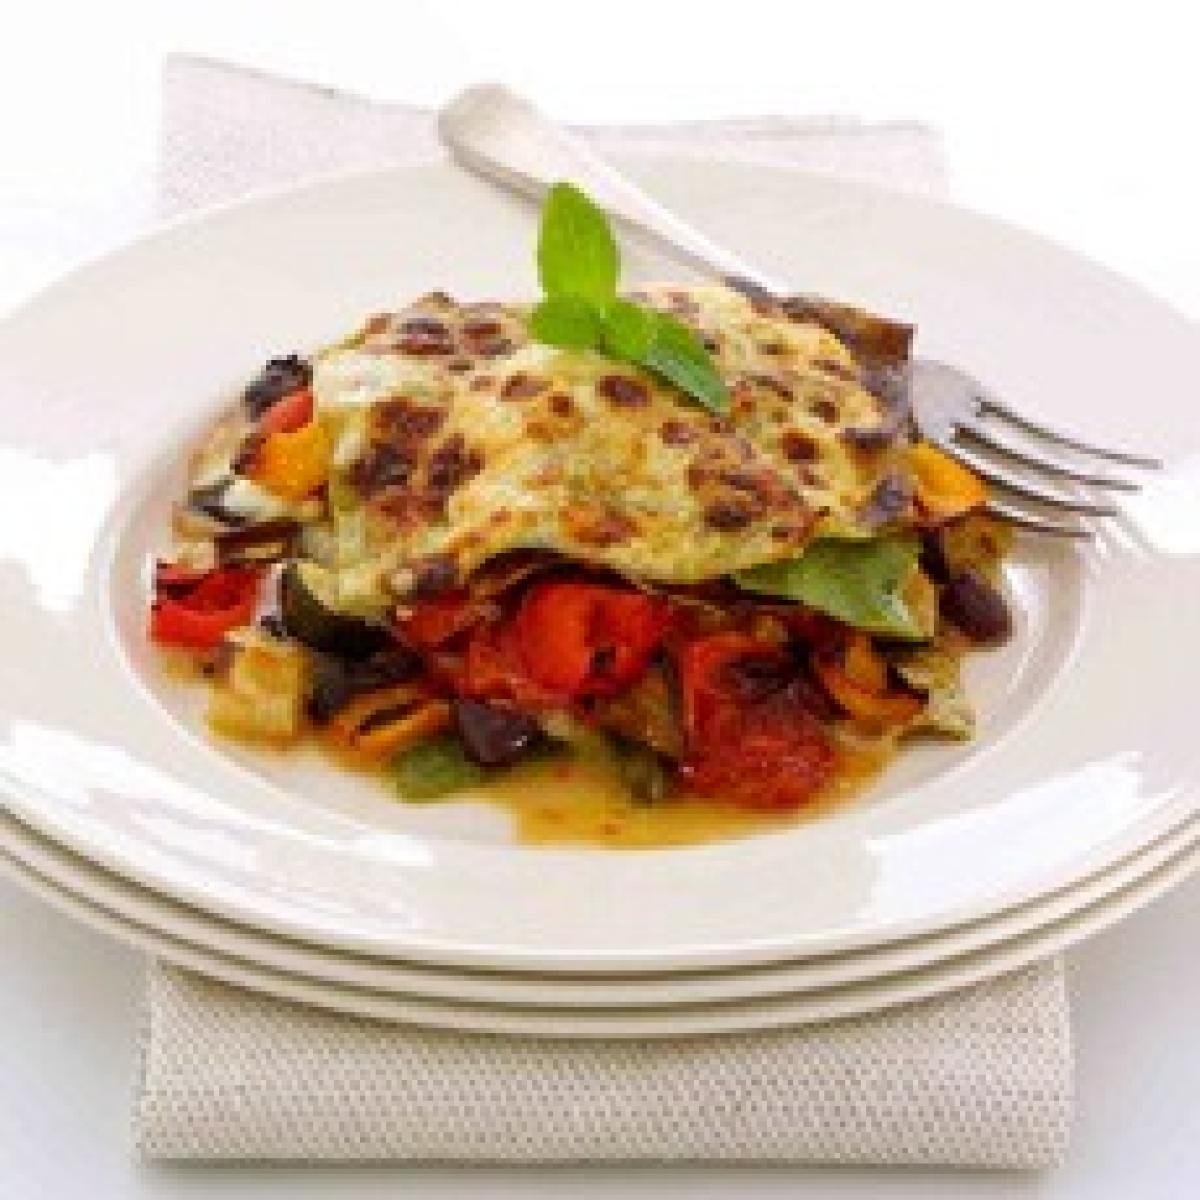 A picture of Delia's Roasted Mediterranean Vegetable Lasagne recipe